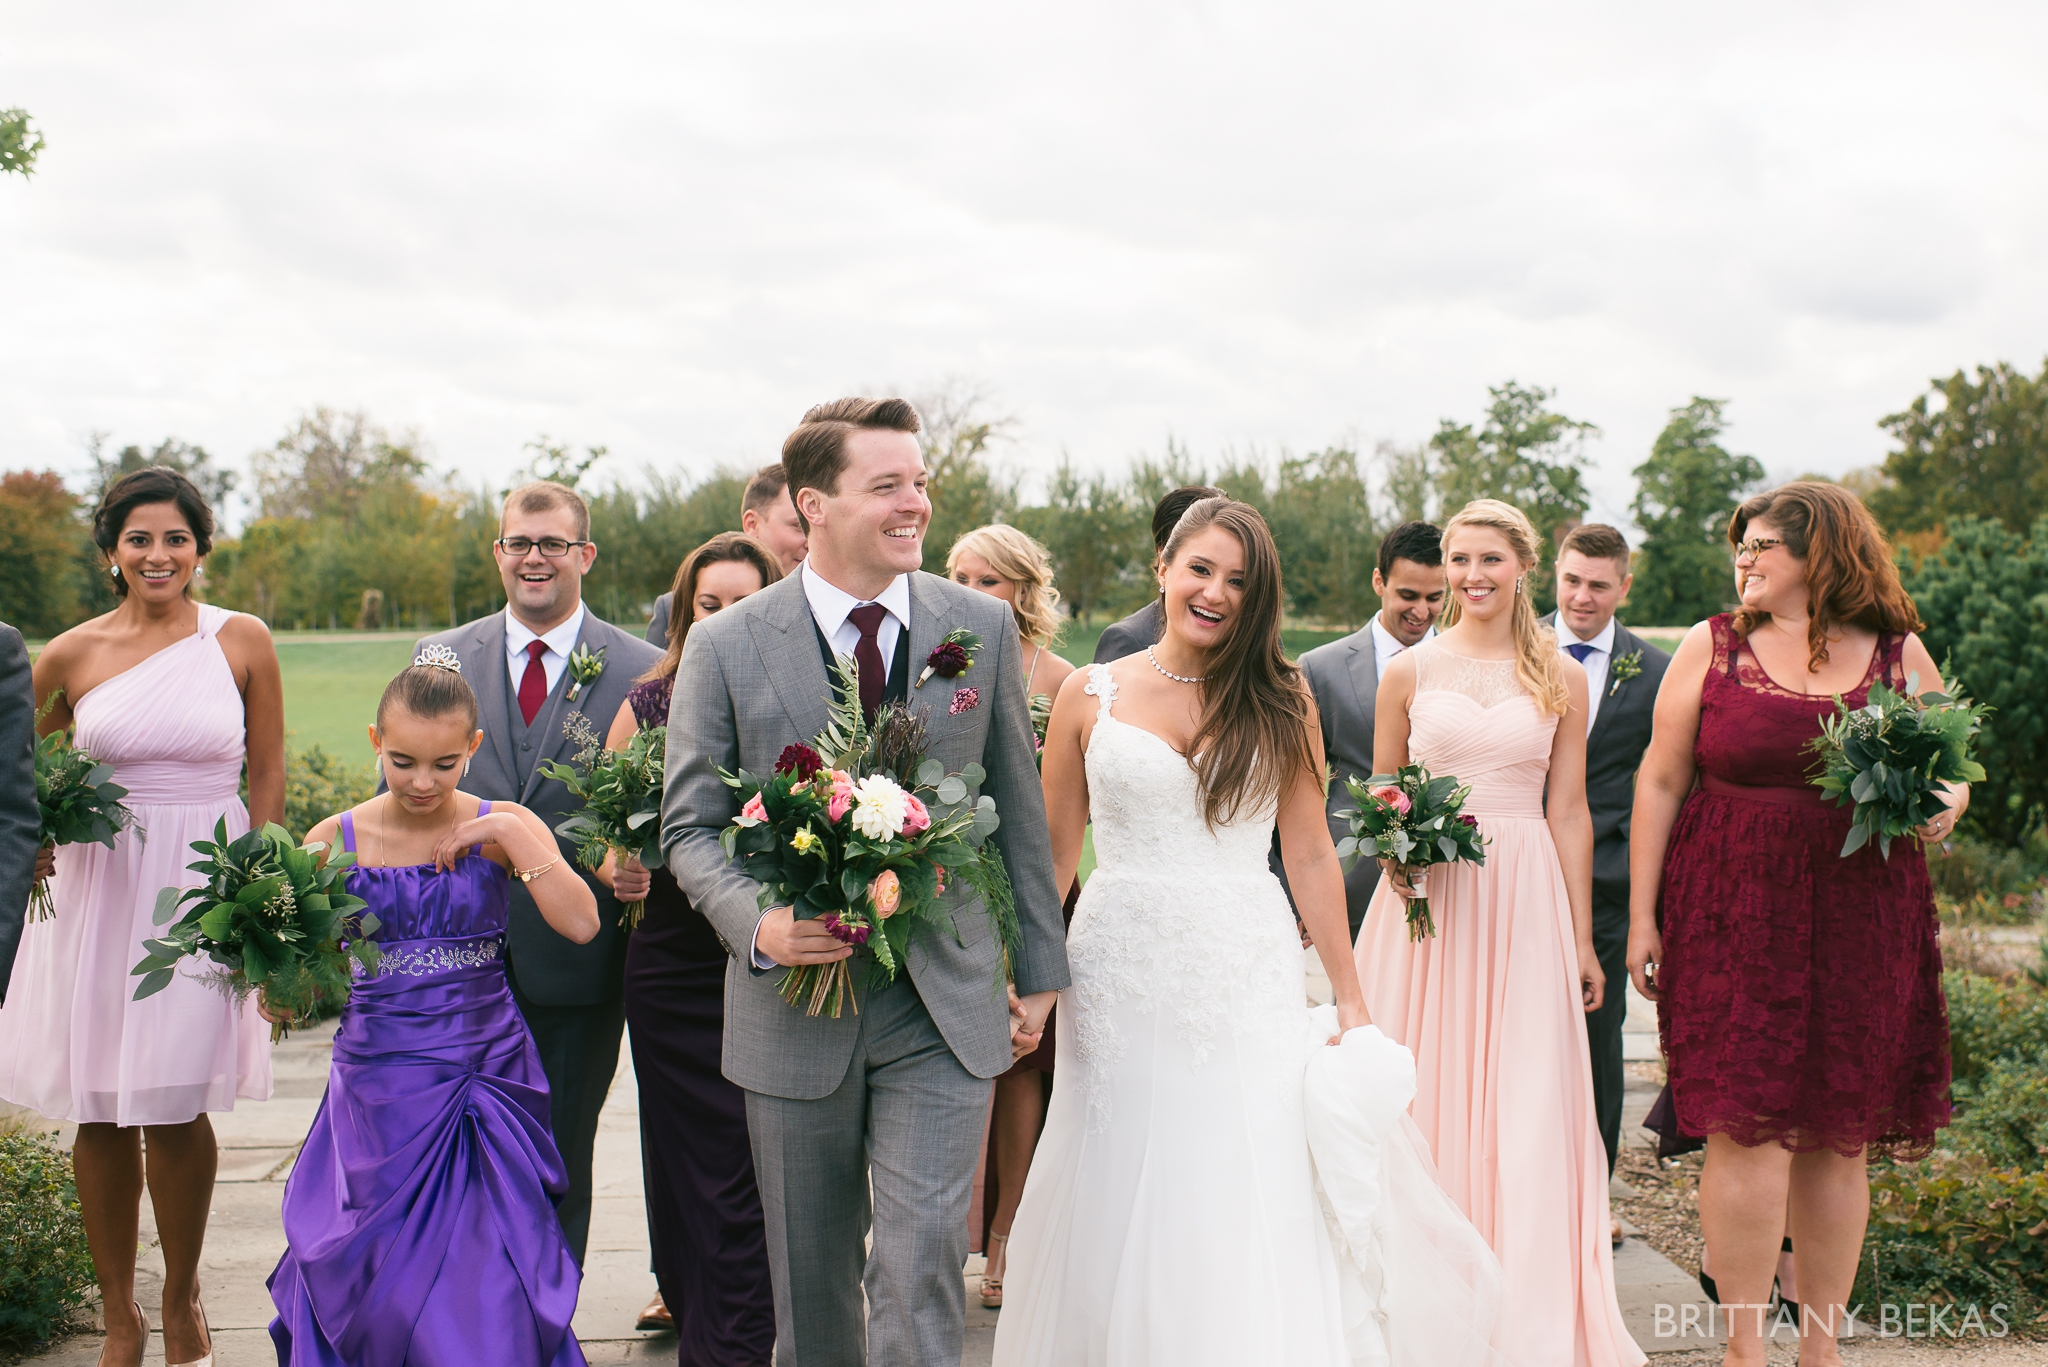 Chicago Wedding Garfield Park Conservatory Wedding Photos - Brittany Bekas Photography_0032